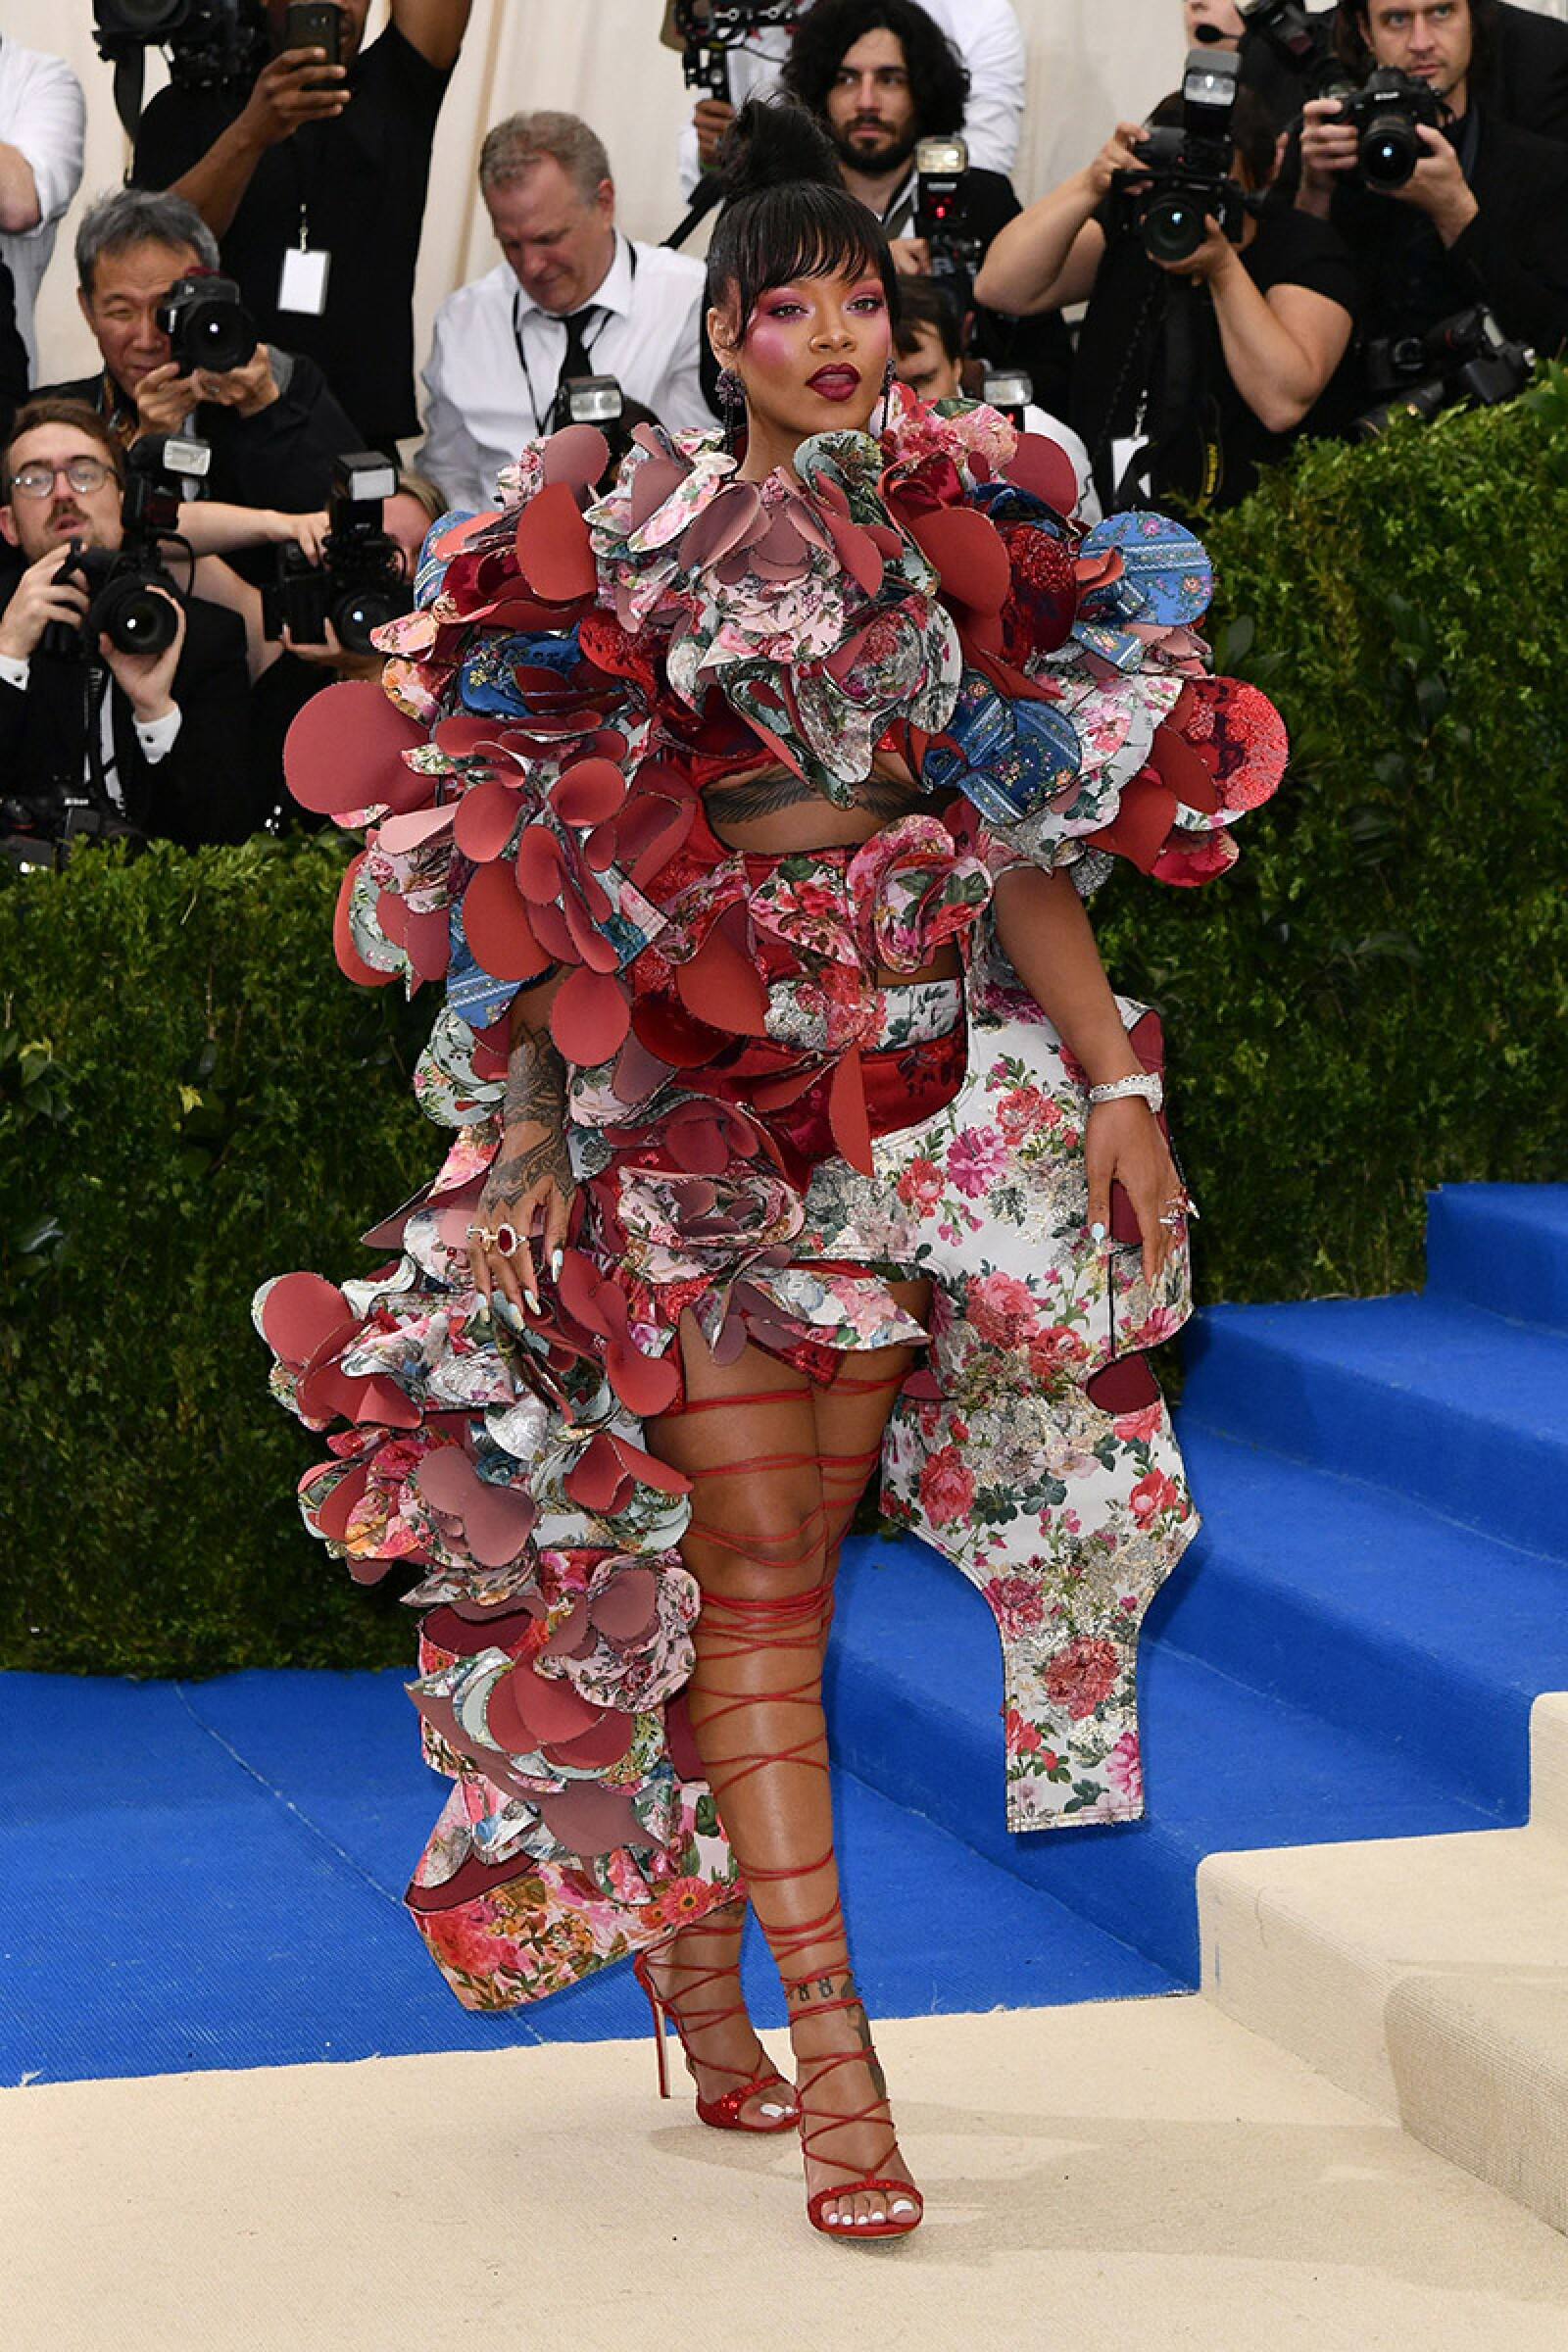 The Costume Institute Benefit celebrating the opening of Rei Kawakubo/Comme des Garcons: Art of the In-Between, Arrivals, The Metropolitan Museum of Art, New York, USA - 01 May 2017